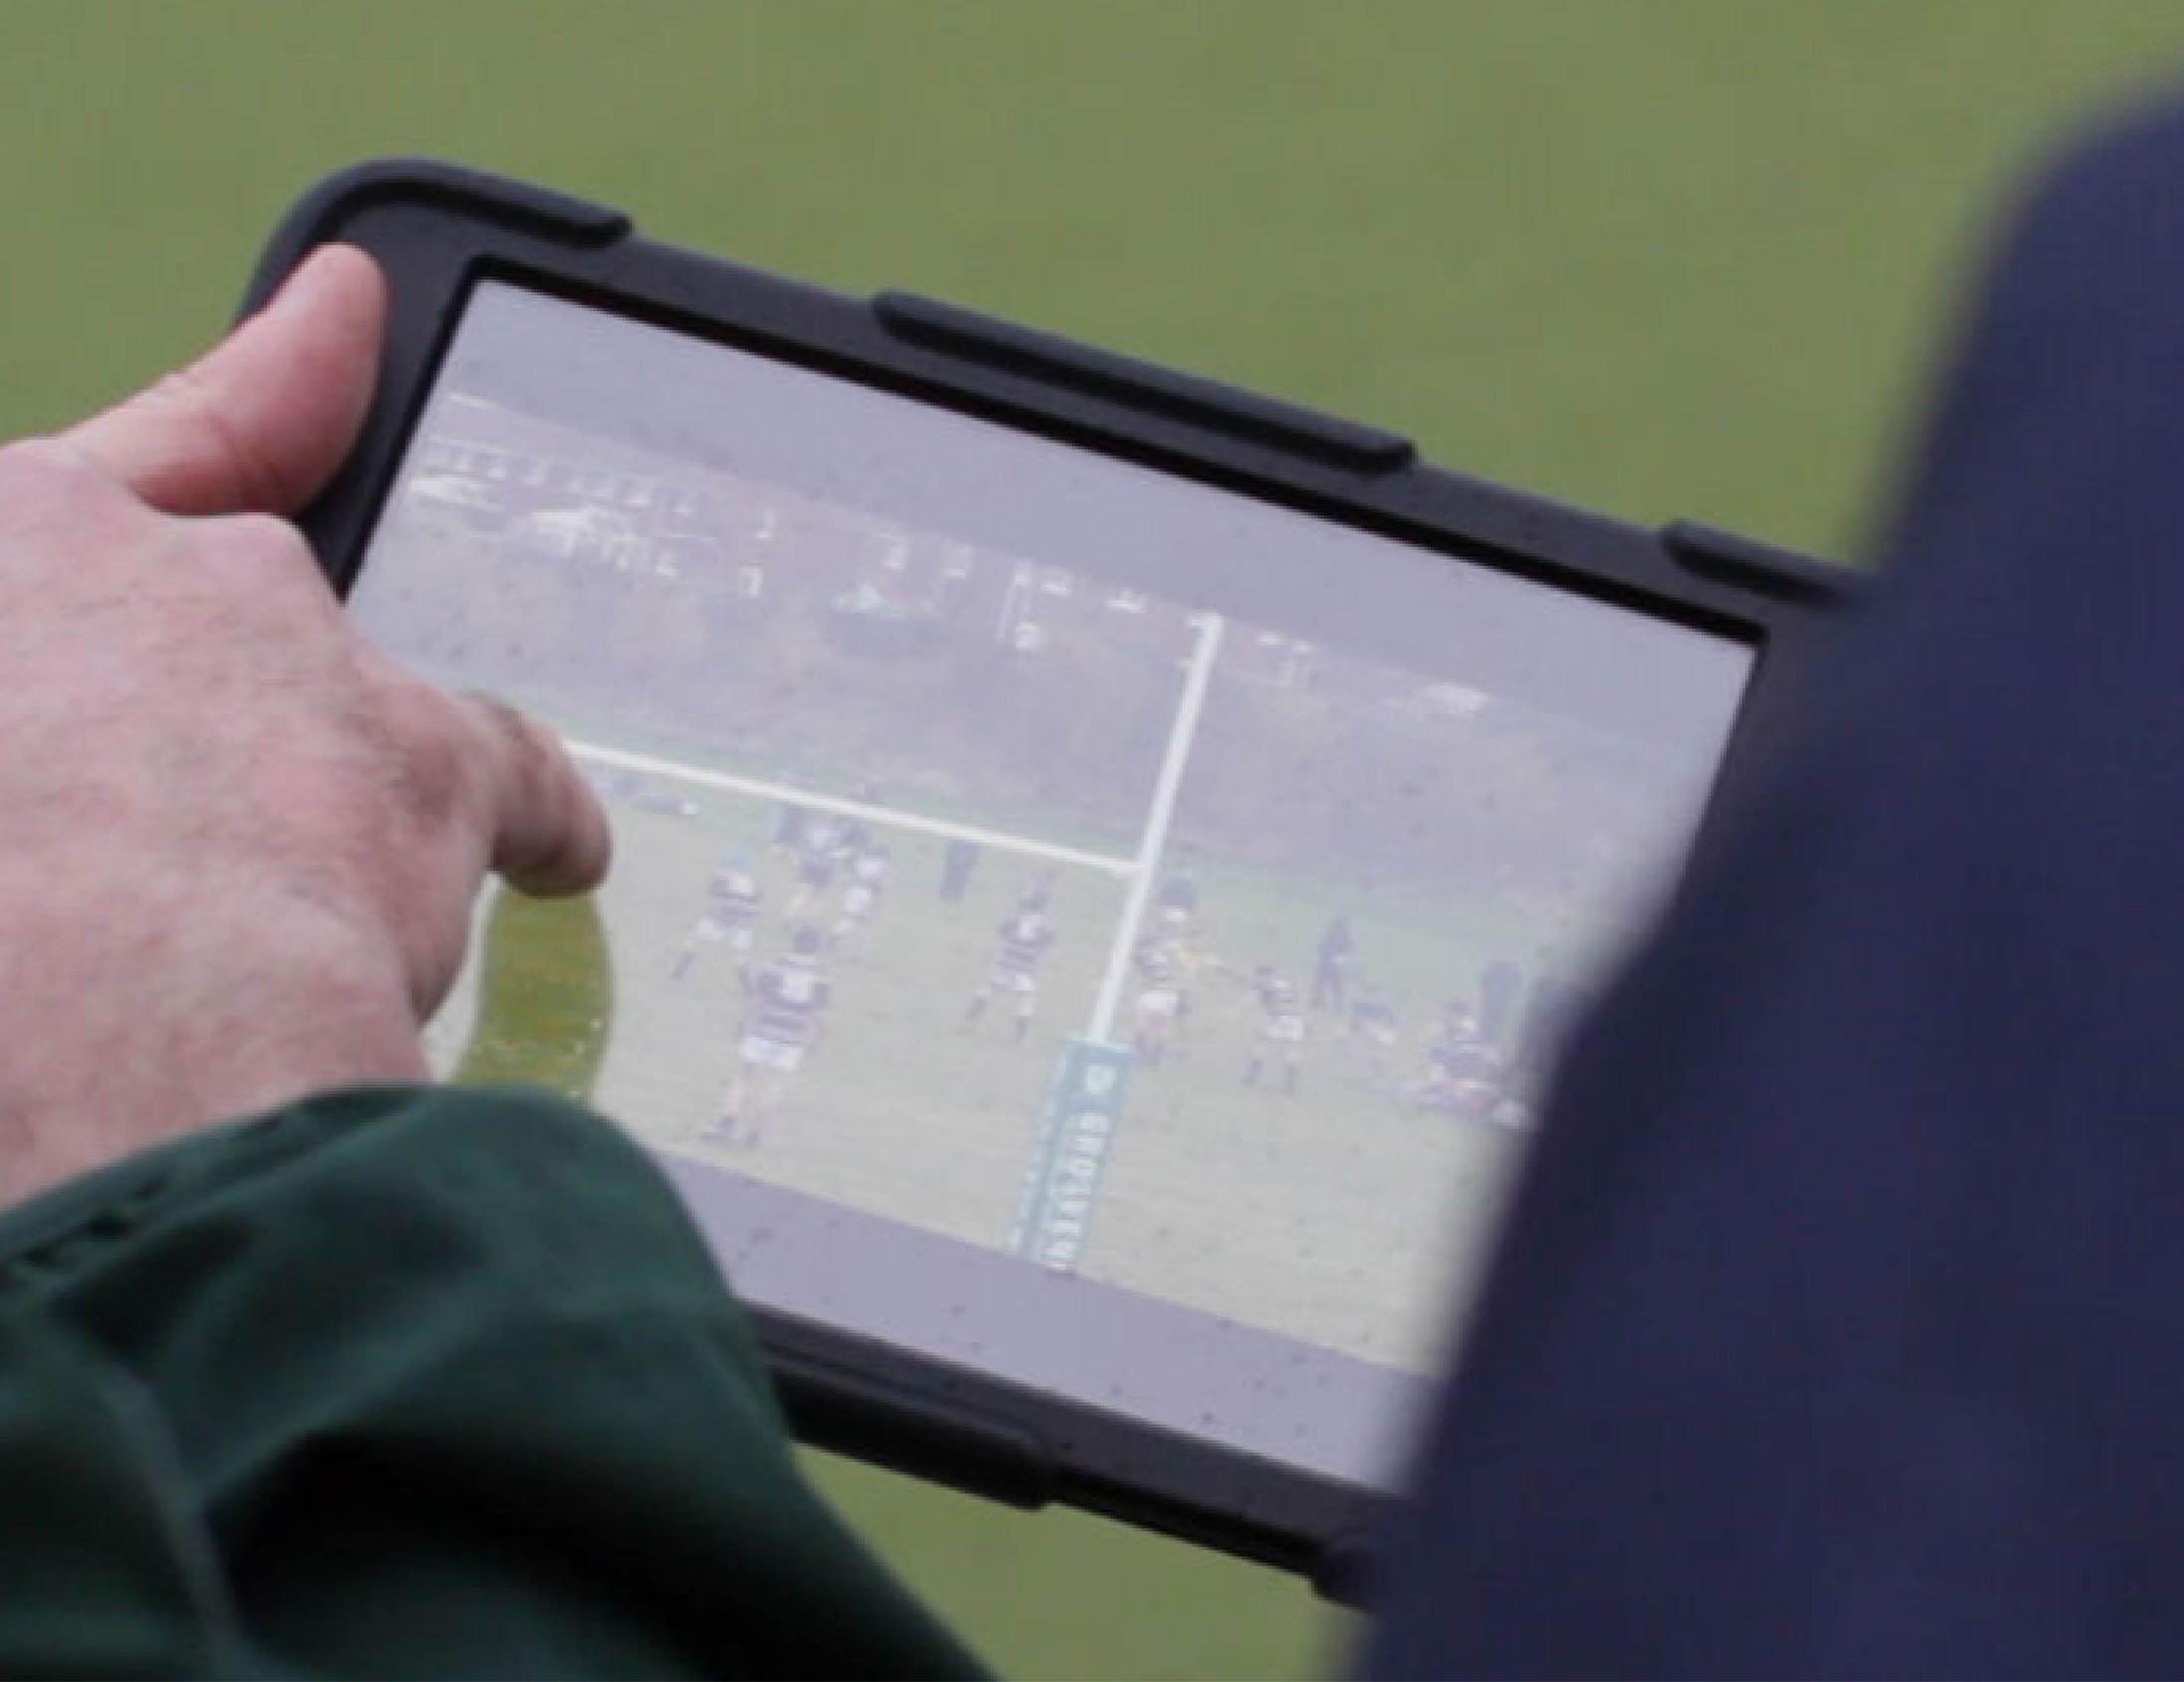 Rugby visual coaching with Performa Sports iPad app